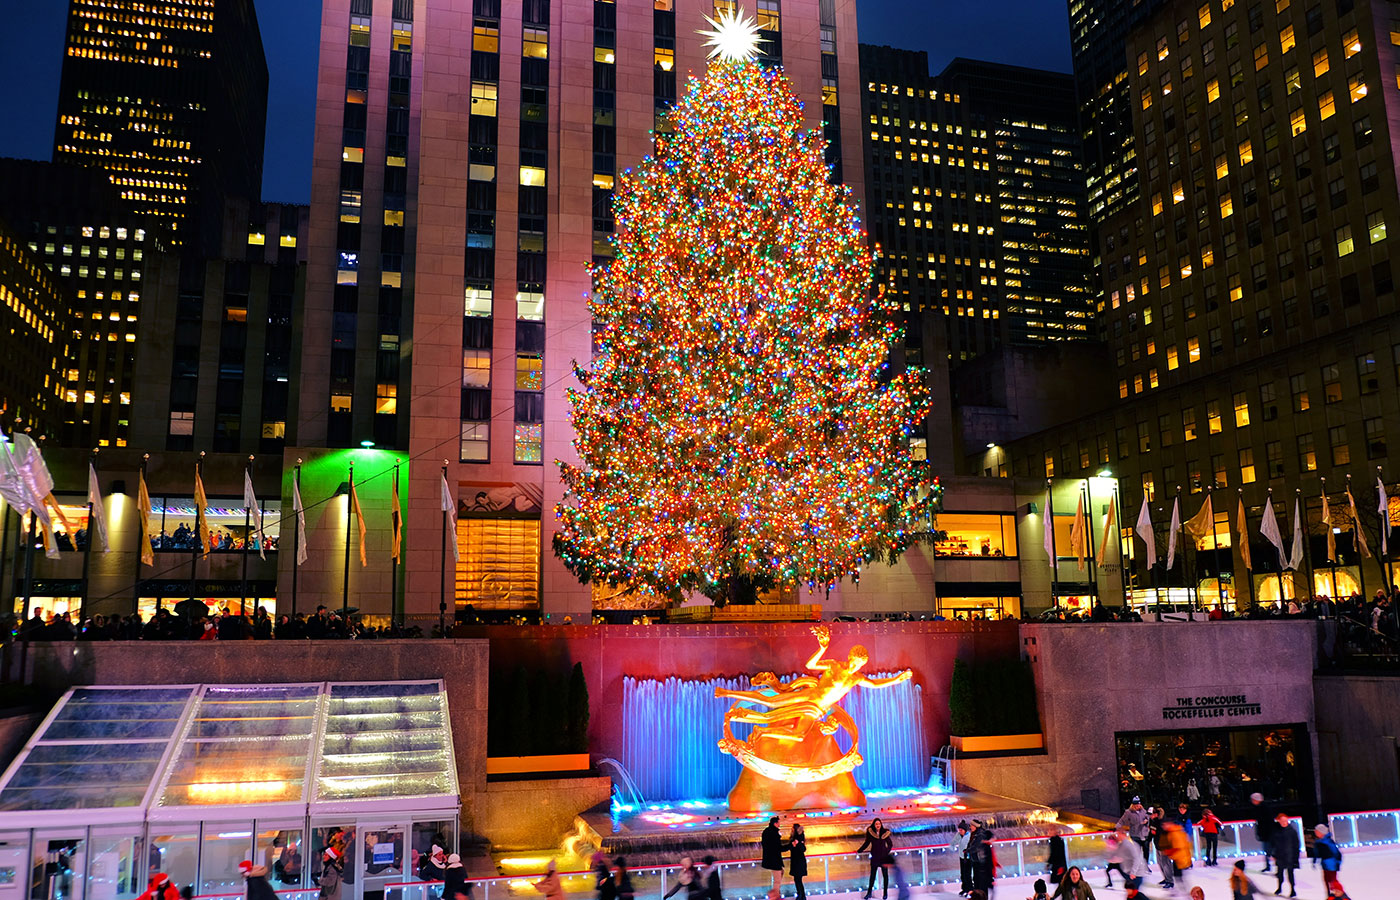 Christmas Trees In Queens, Ny 2021 Christmas Season In New York 2021 Newyork Co Uk